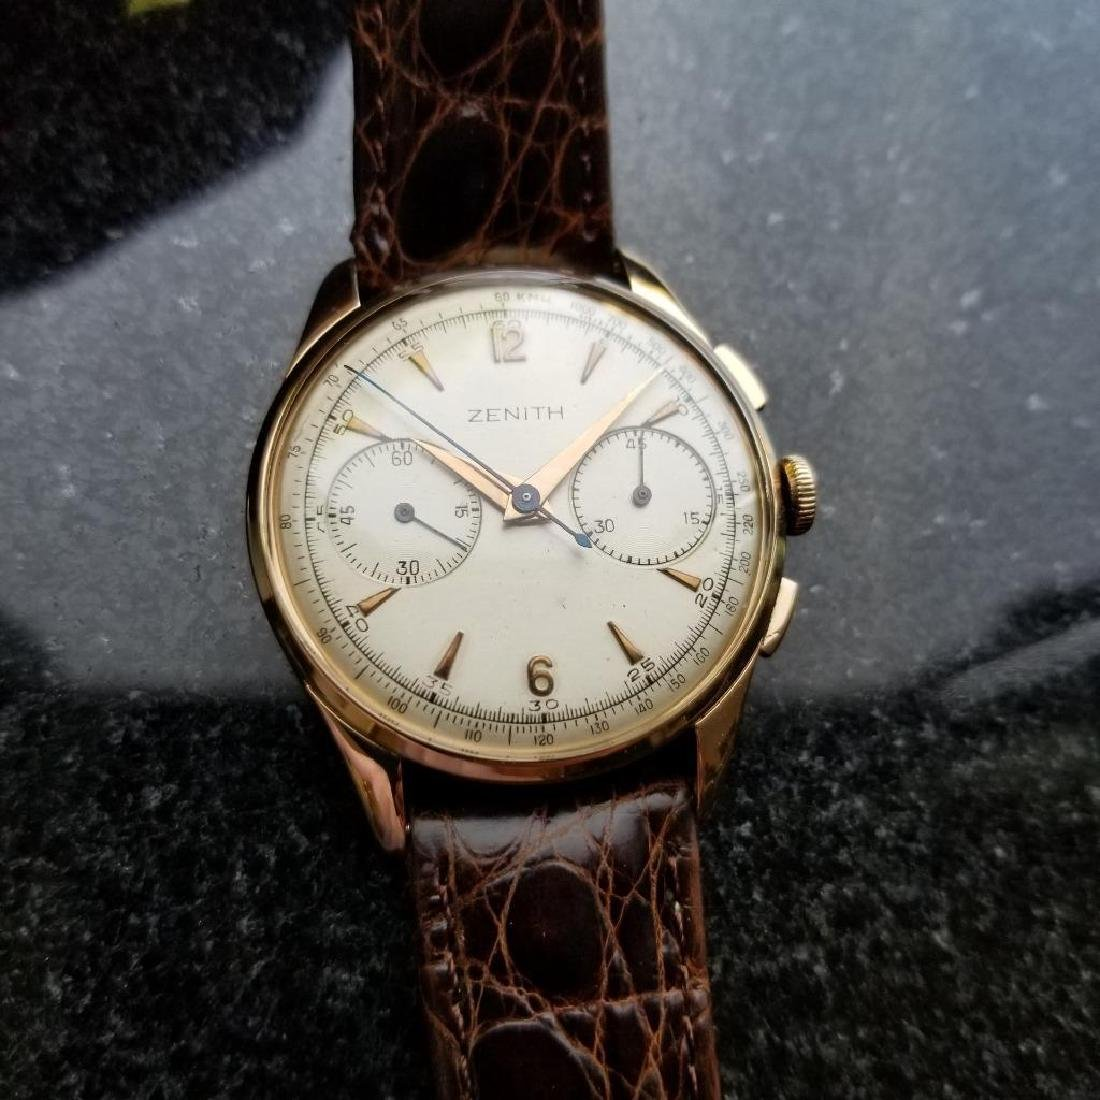 Zenith Vintage 18K Solid Rose Gold 1960s Swiss Watch - 2